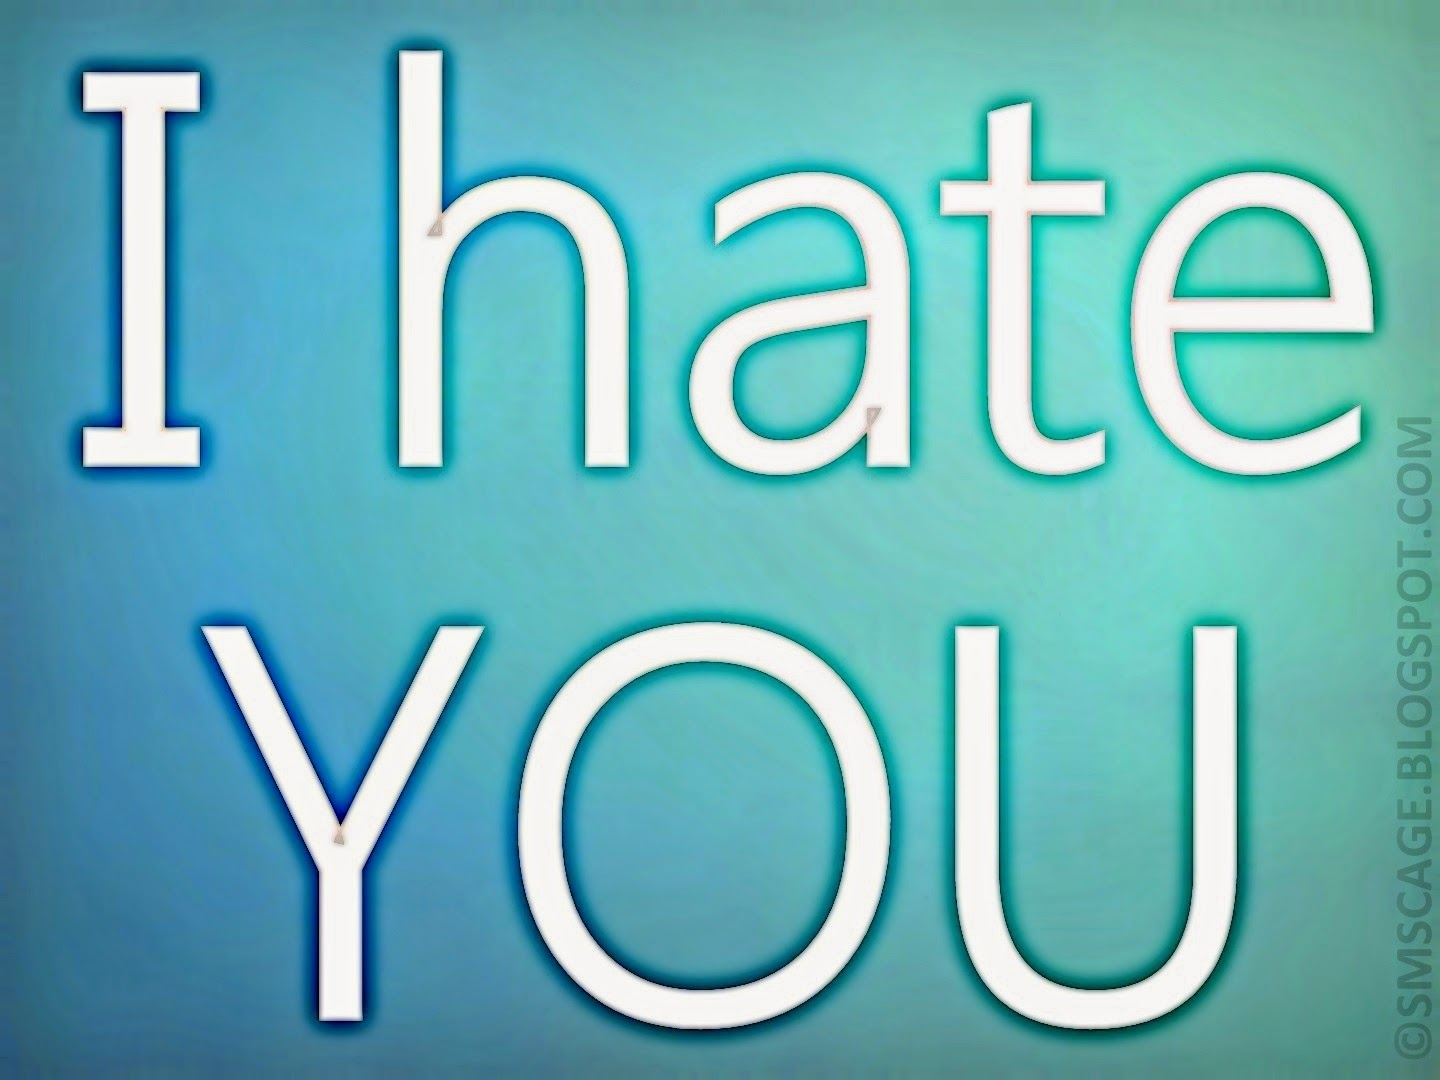 I Hate You Hindi SMS Collection | SMS Cage